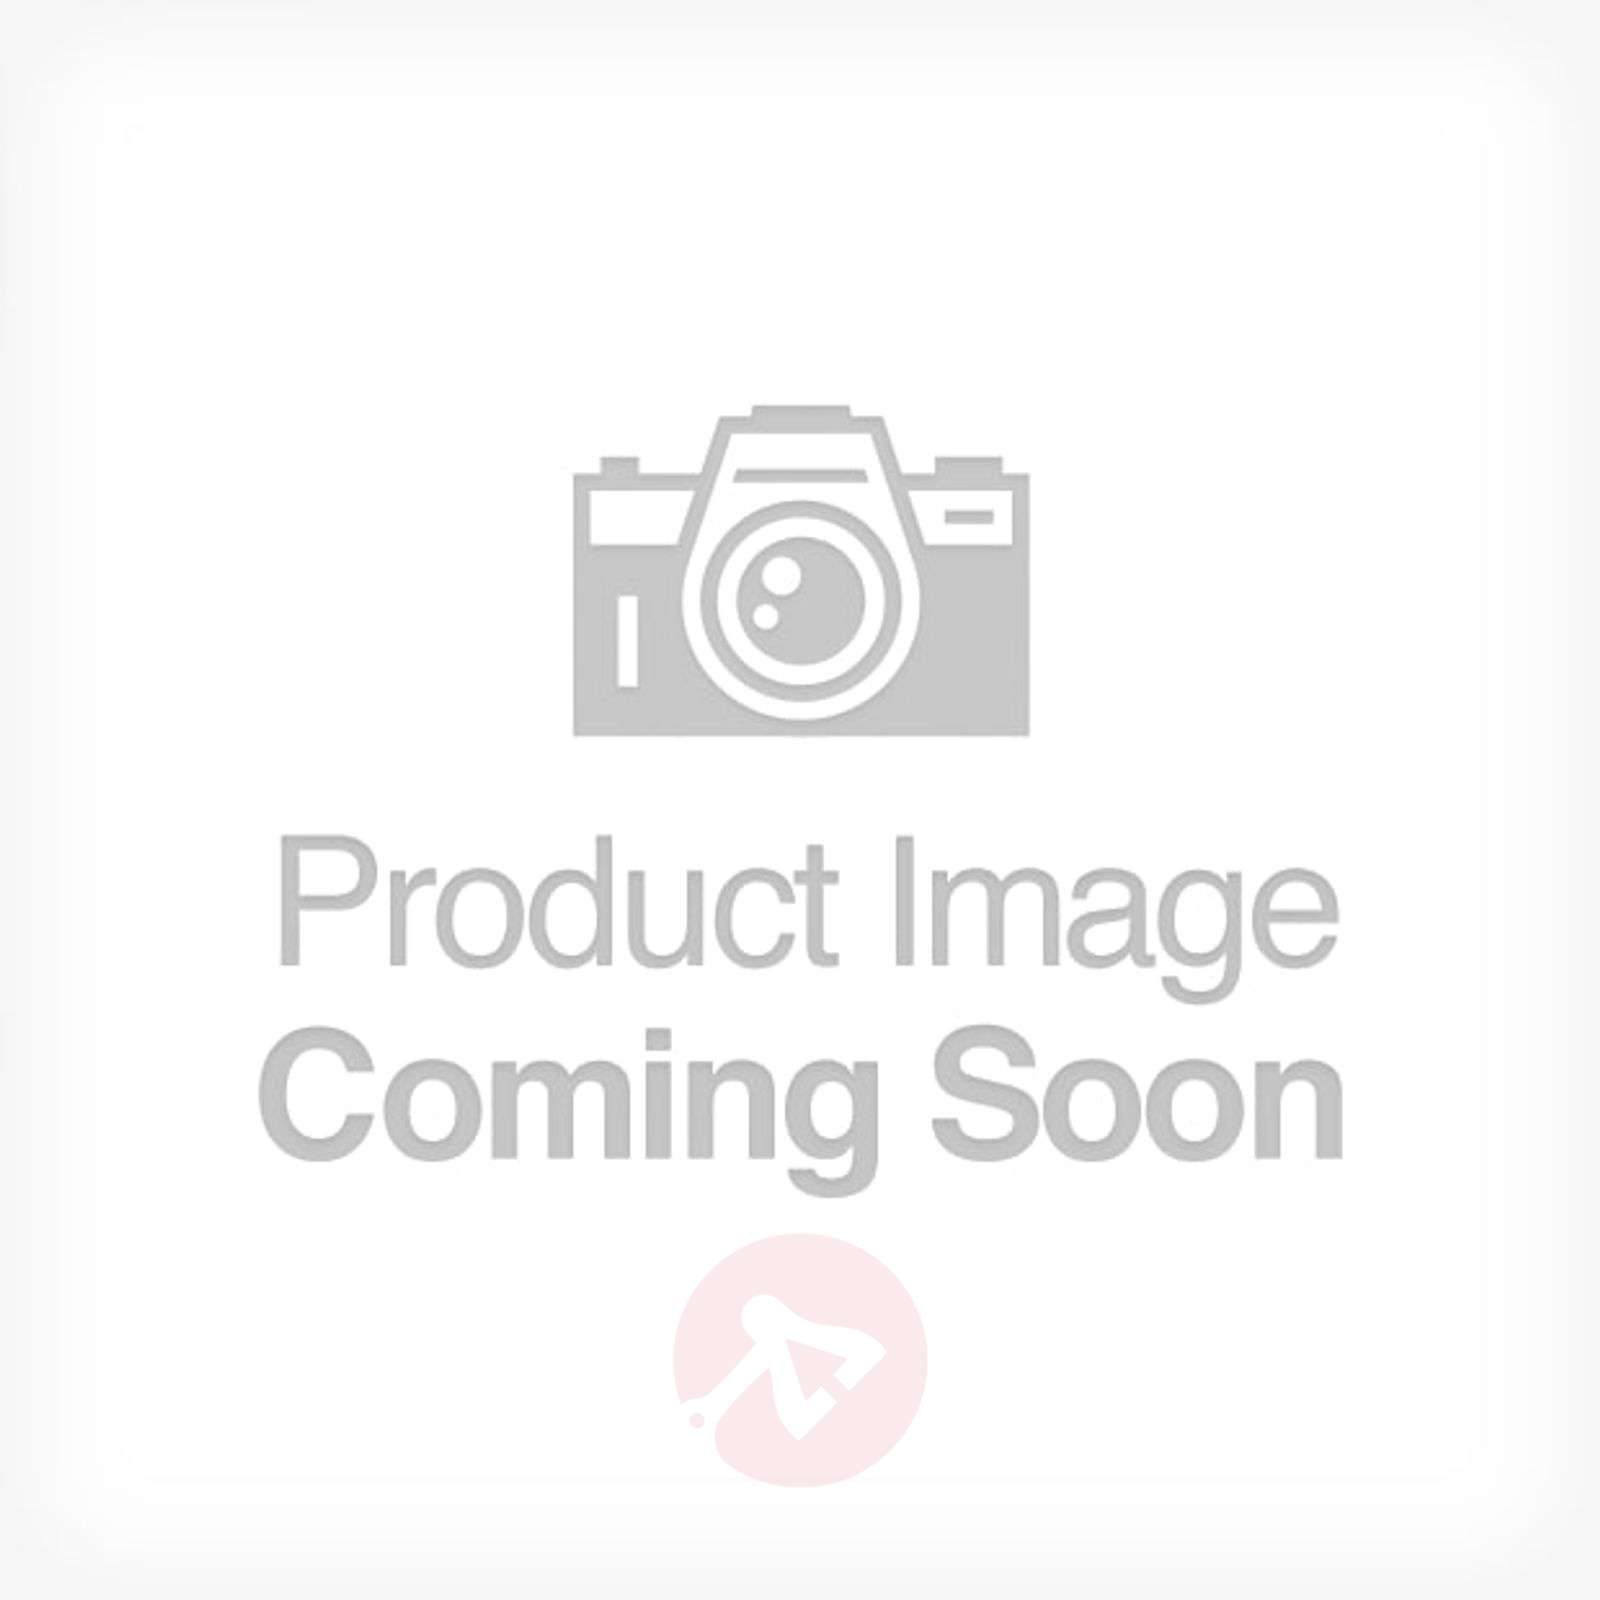 Alton streamlined LED picture light in brass-3048930X-01